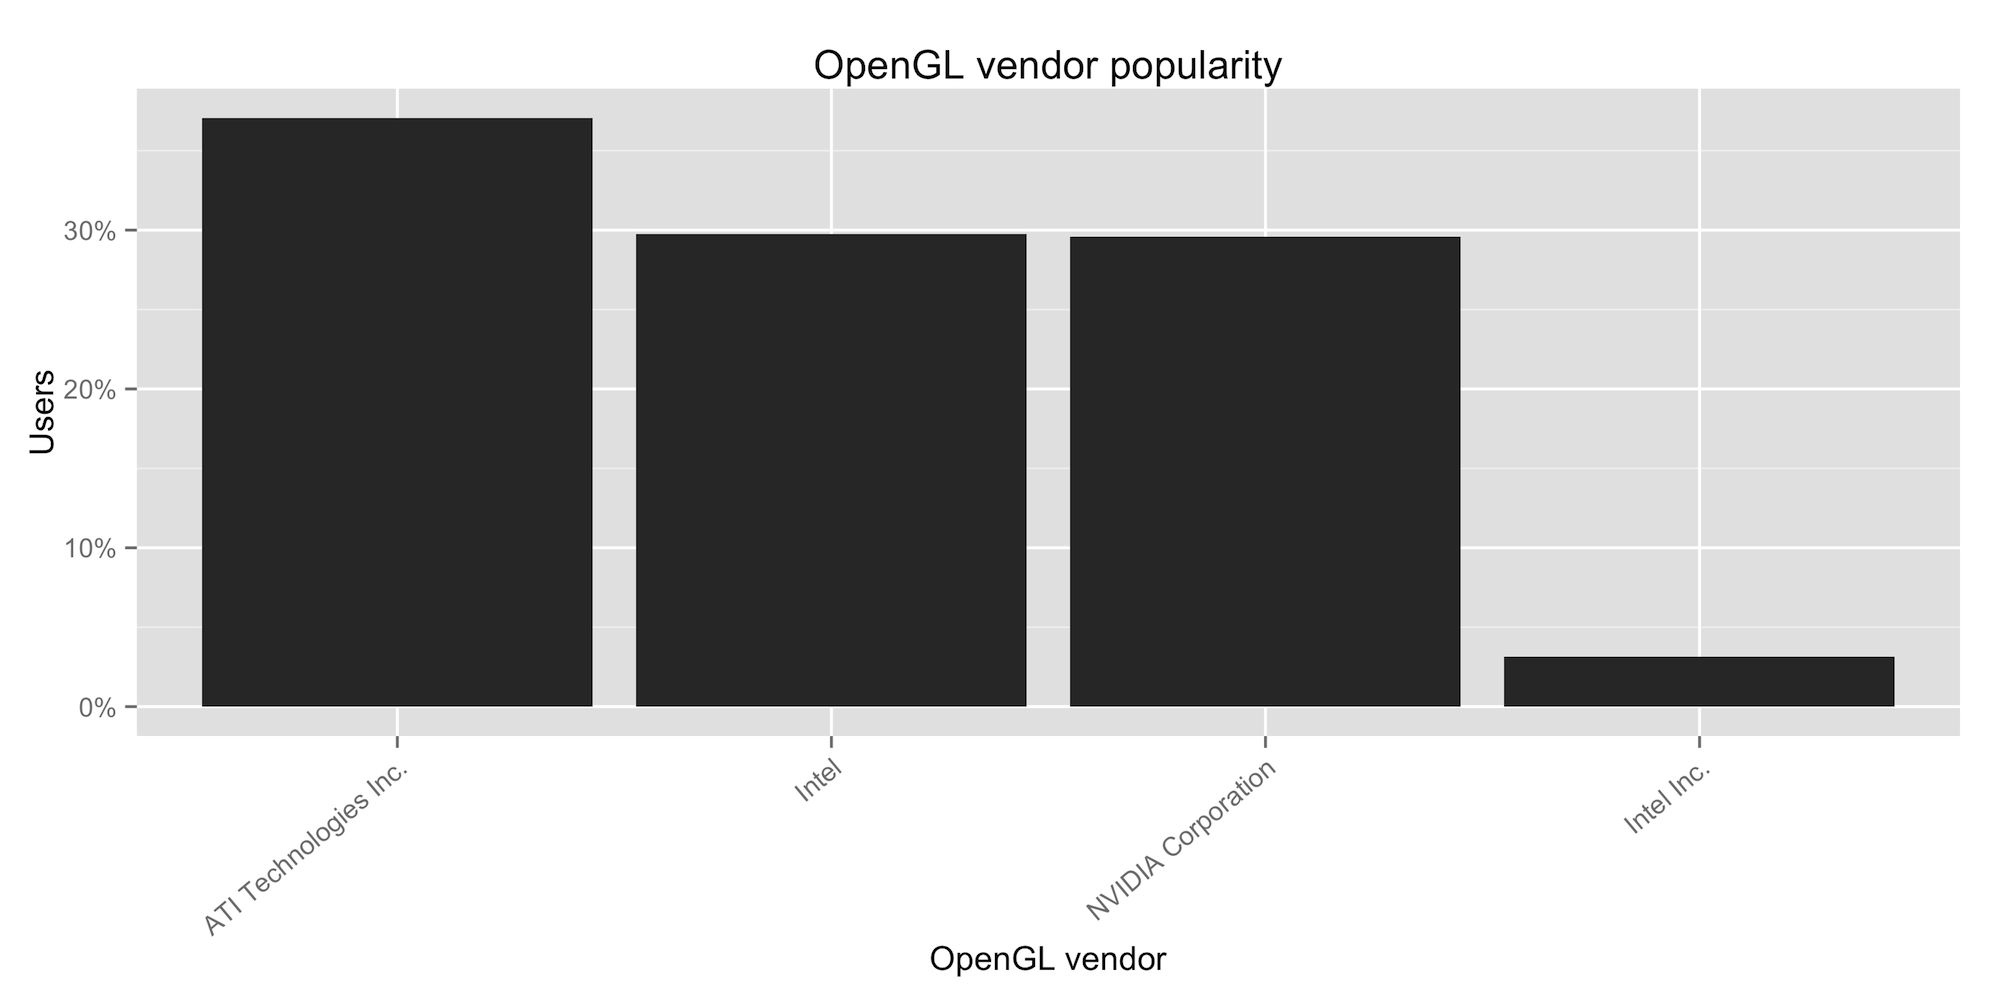 OpenGL vendor popularity